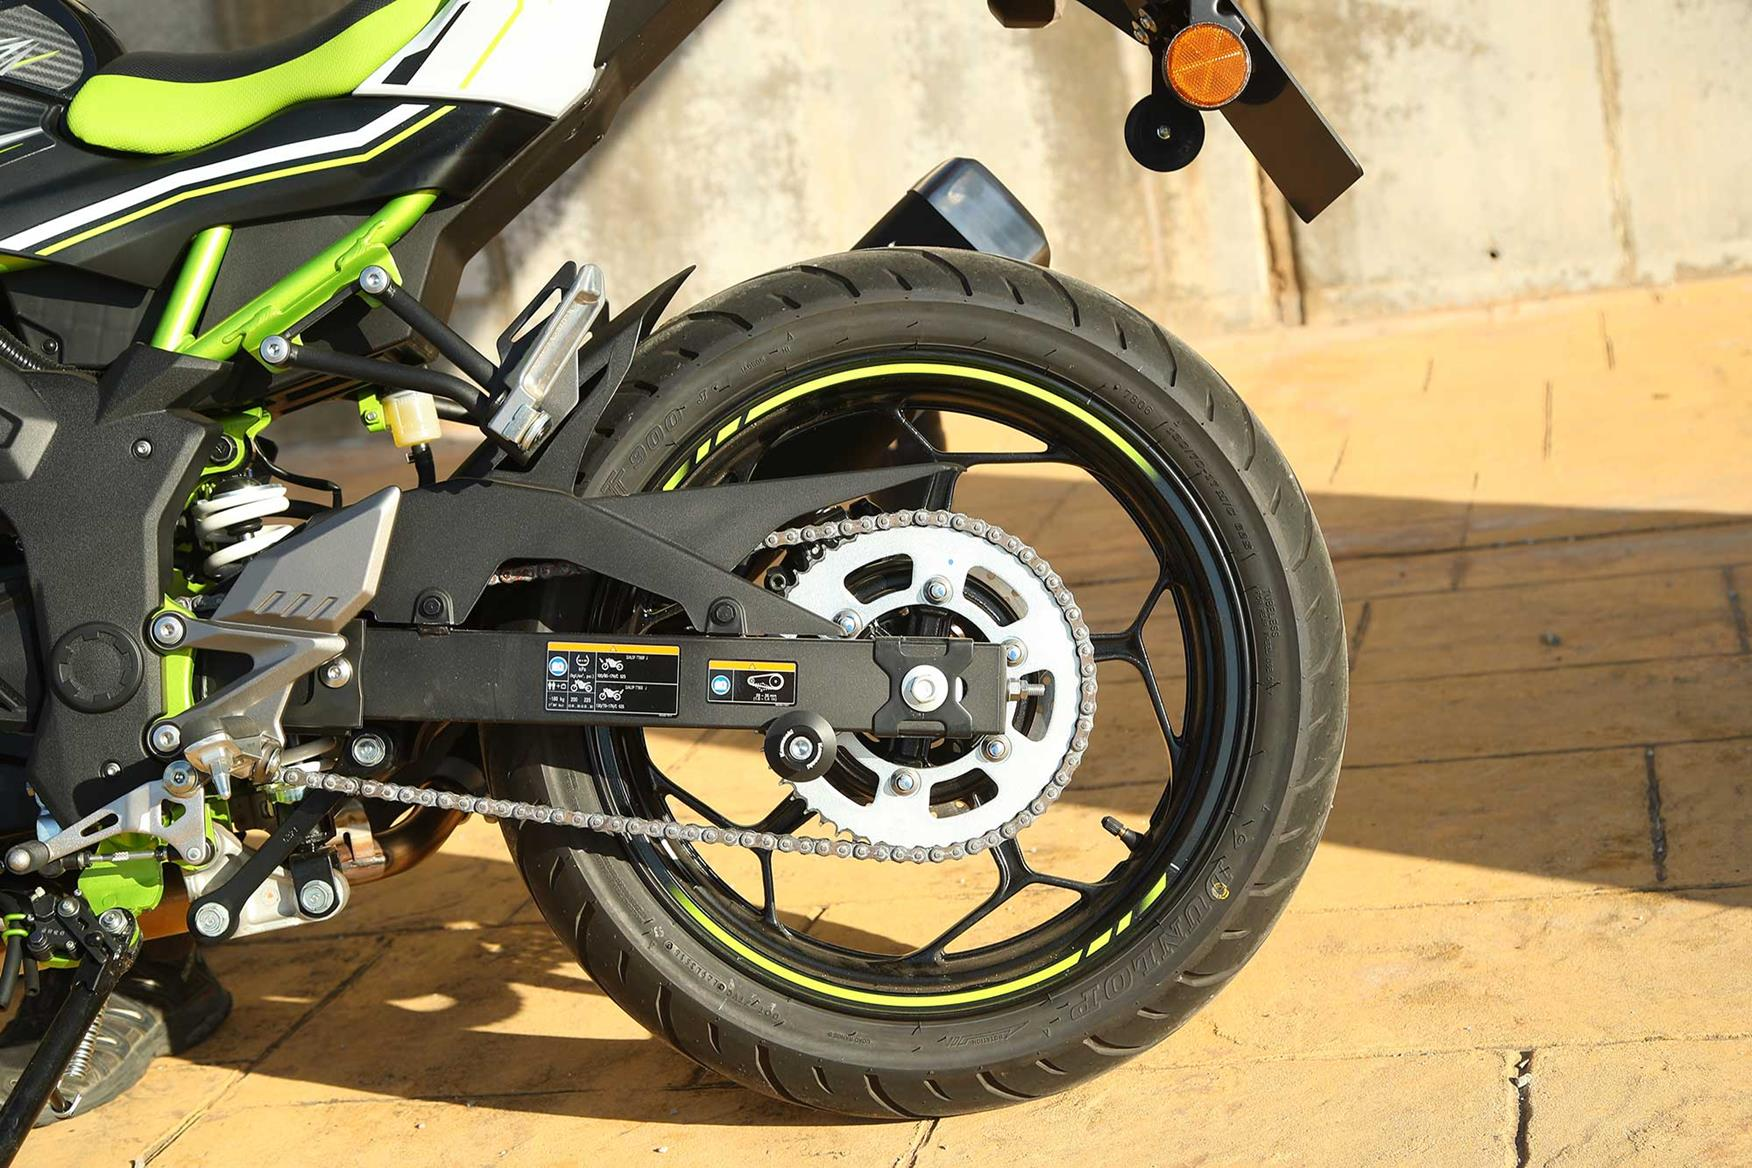 The Z125 rear wheel